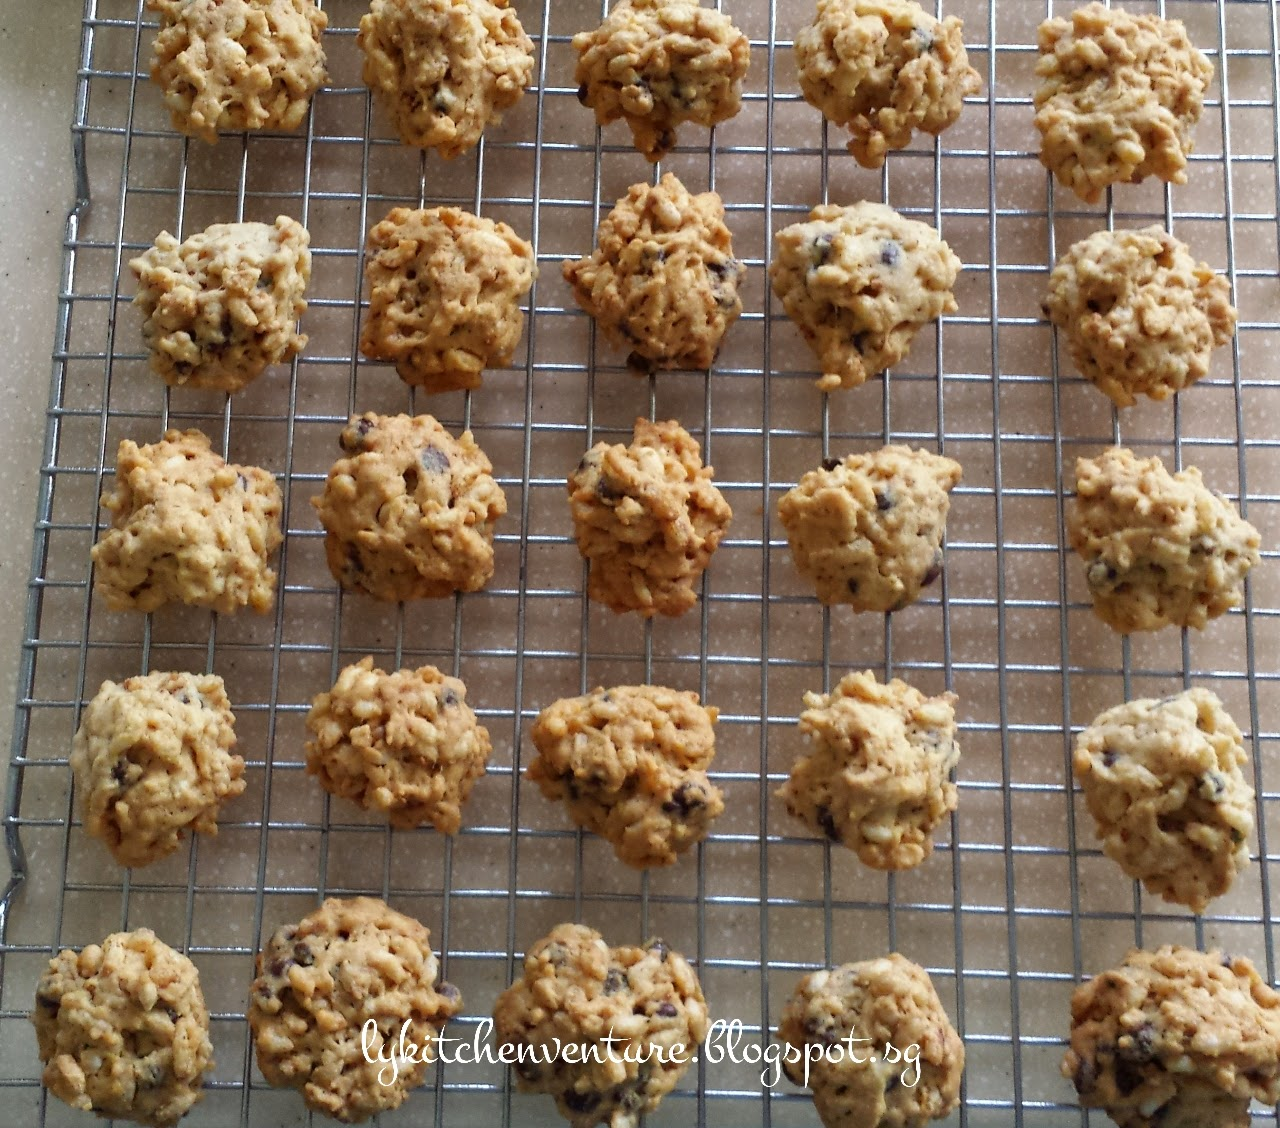 Ly S Kitchen Ventures Chocolate Bubble Rice Cookies 泡泡米曲奇